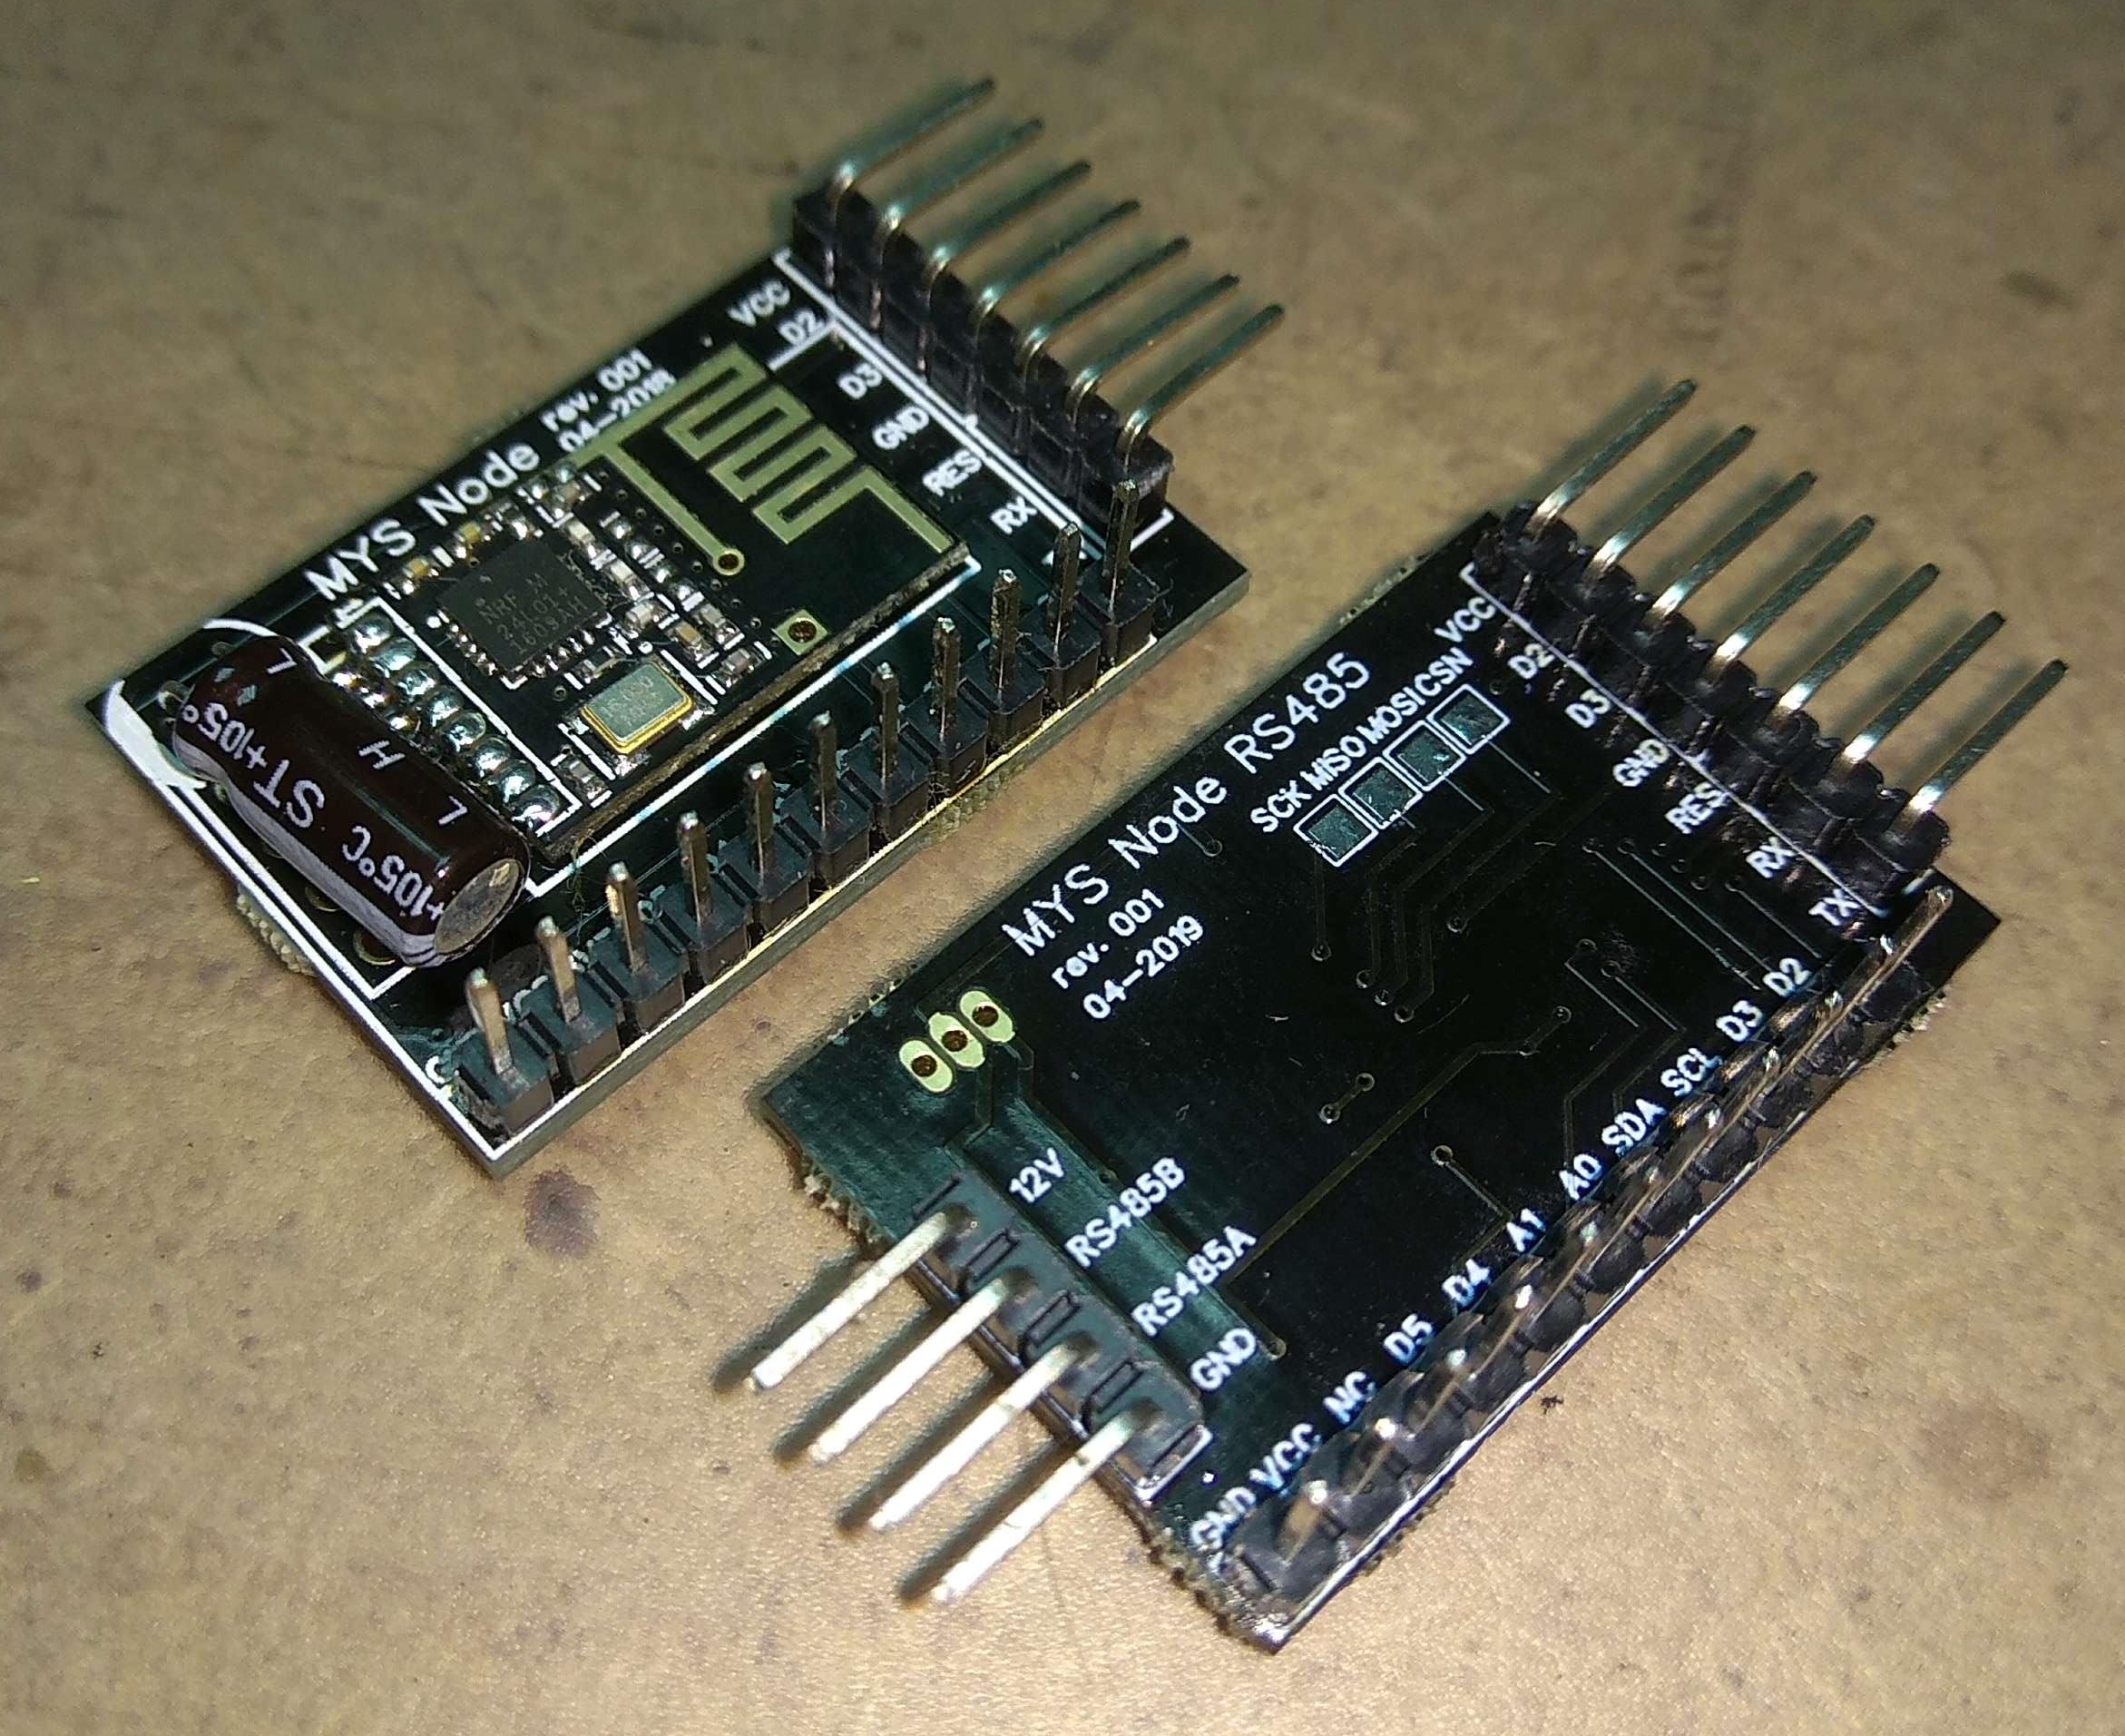 485 node compared to RF24 Node